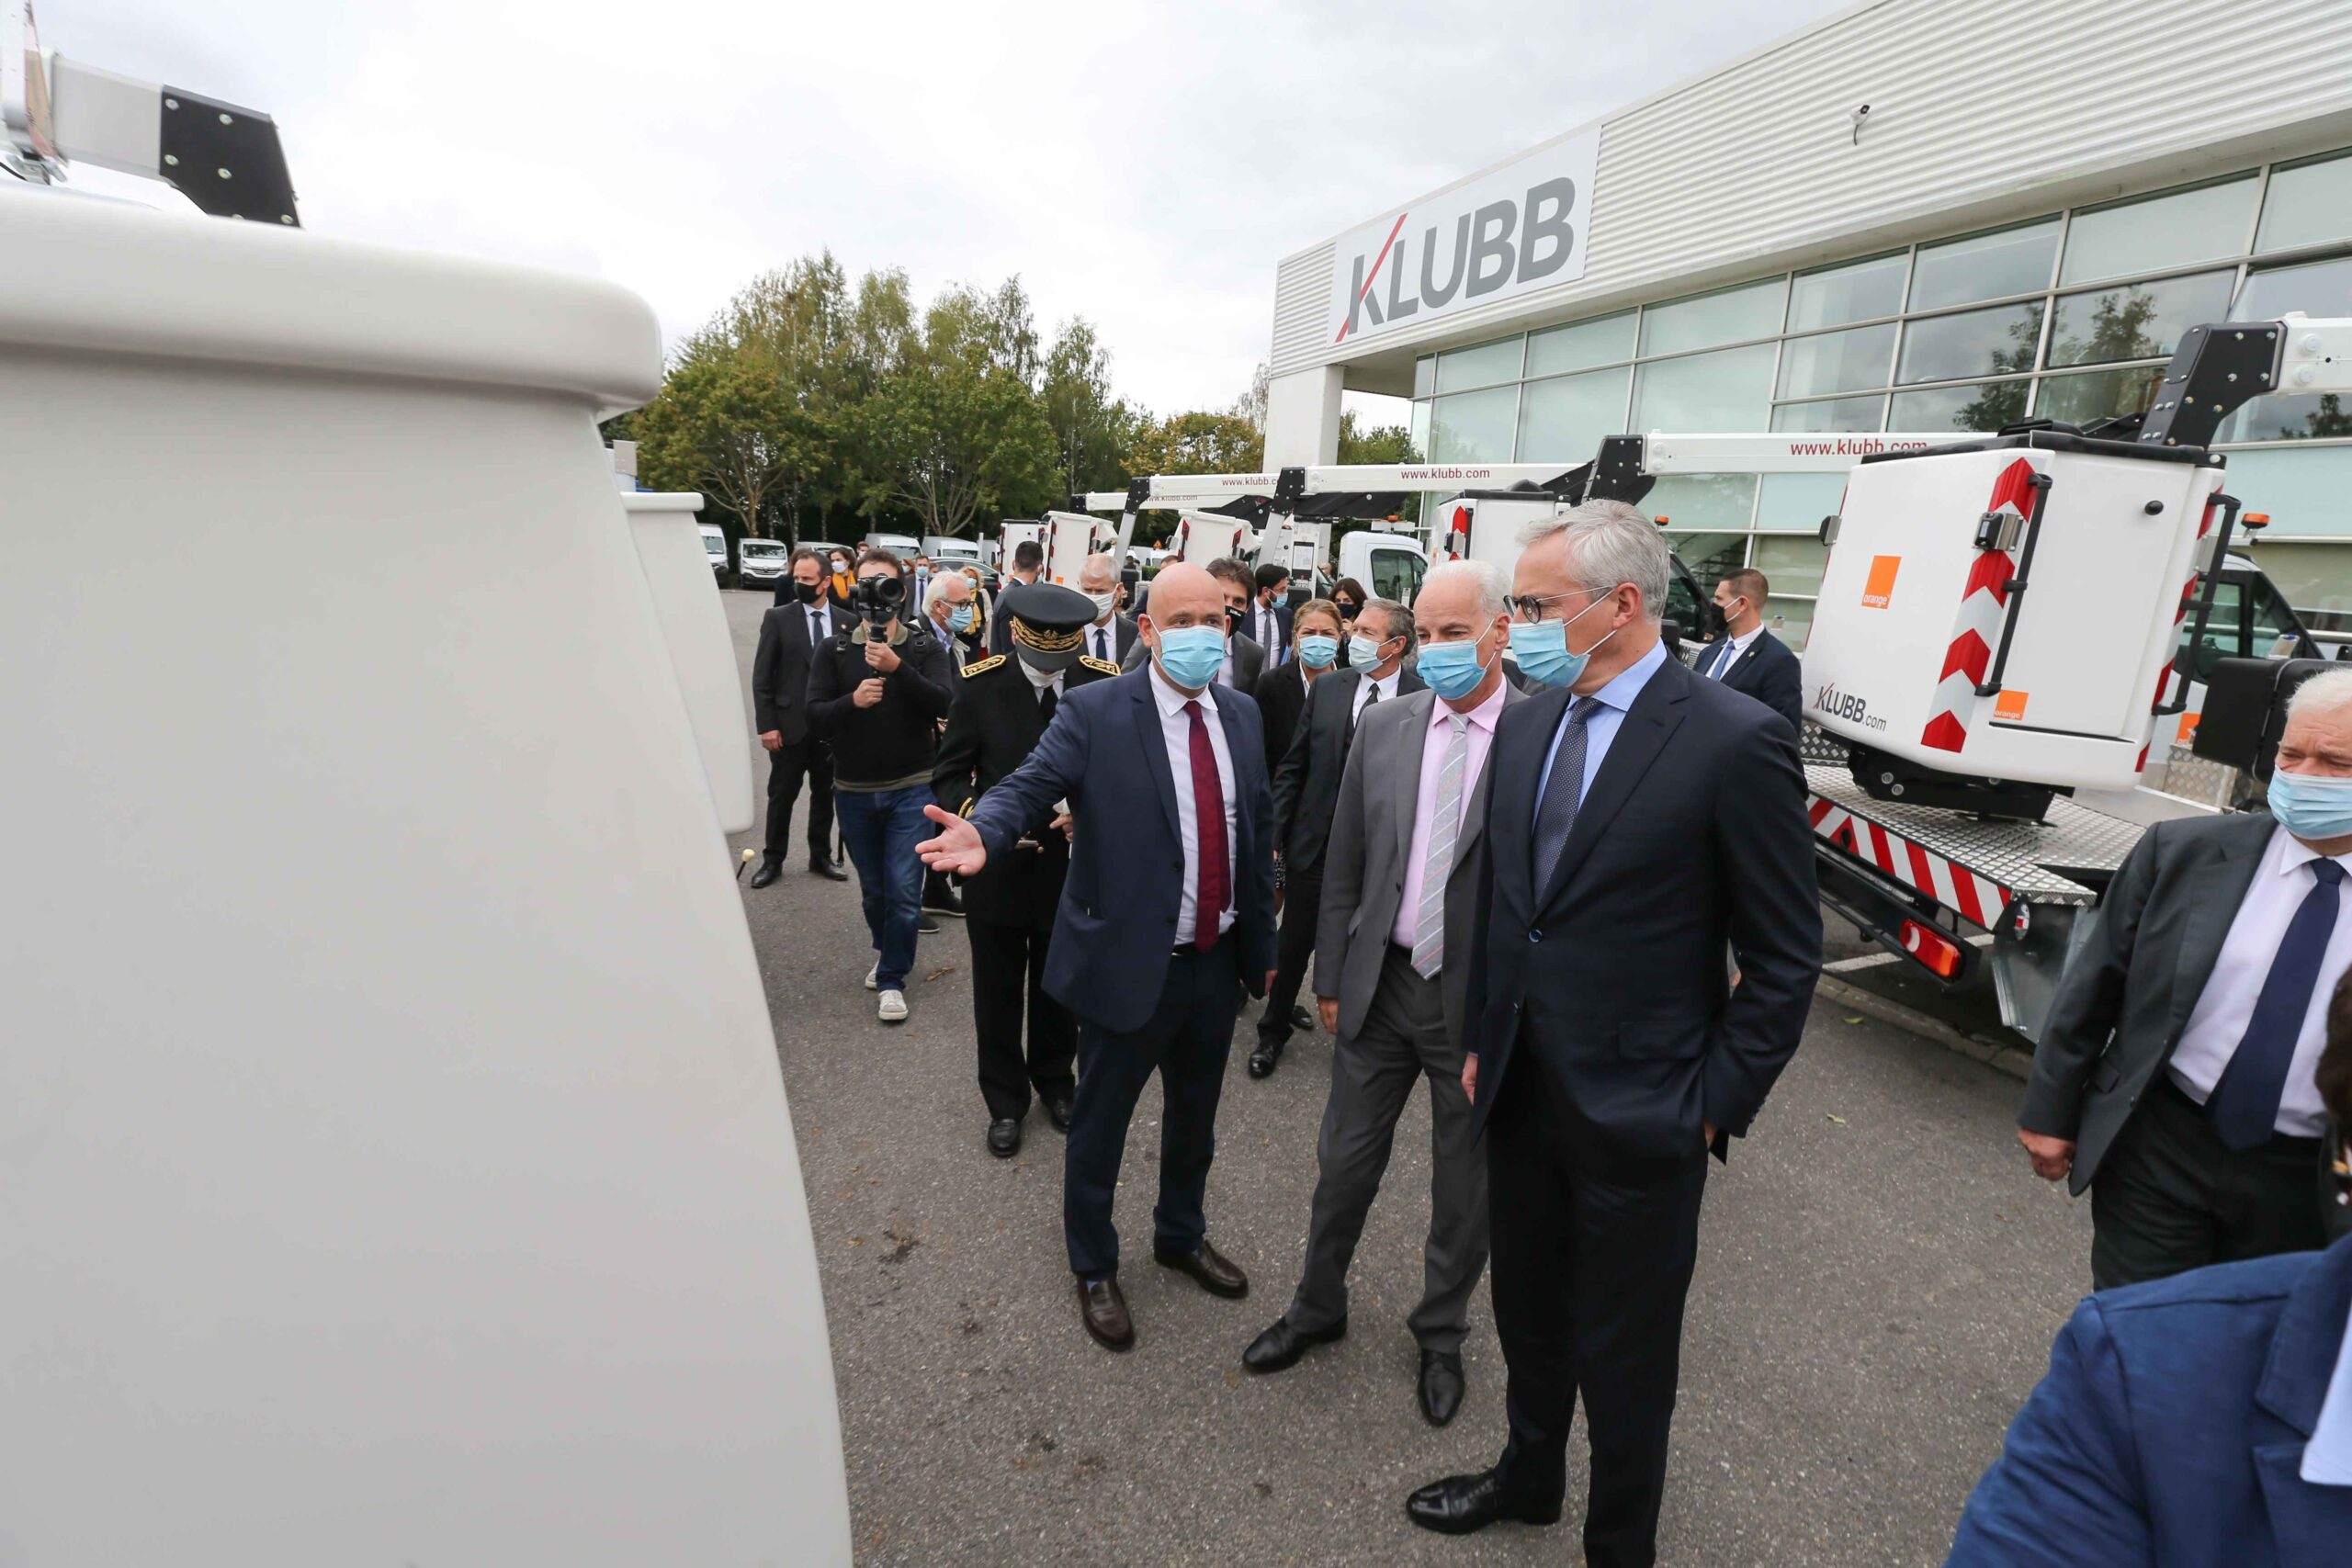 French Economy Minister Bruno Le Maire (R) and French Junior Minister of Small and Medium Entreprises Alain Griset (C), accompanied by Julien Bourrellis (L), Klubb Group CEO visit  the Klubb aerial platform production site  dedicated to the manufacture of